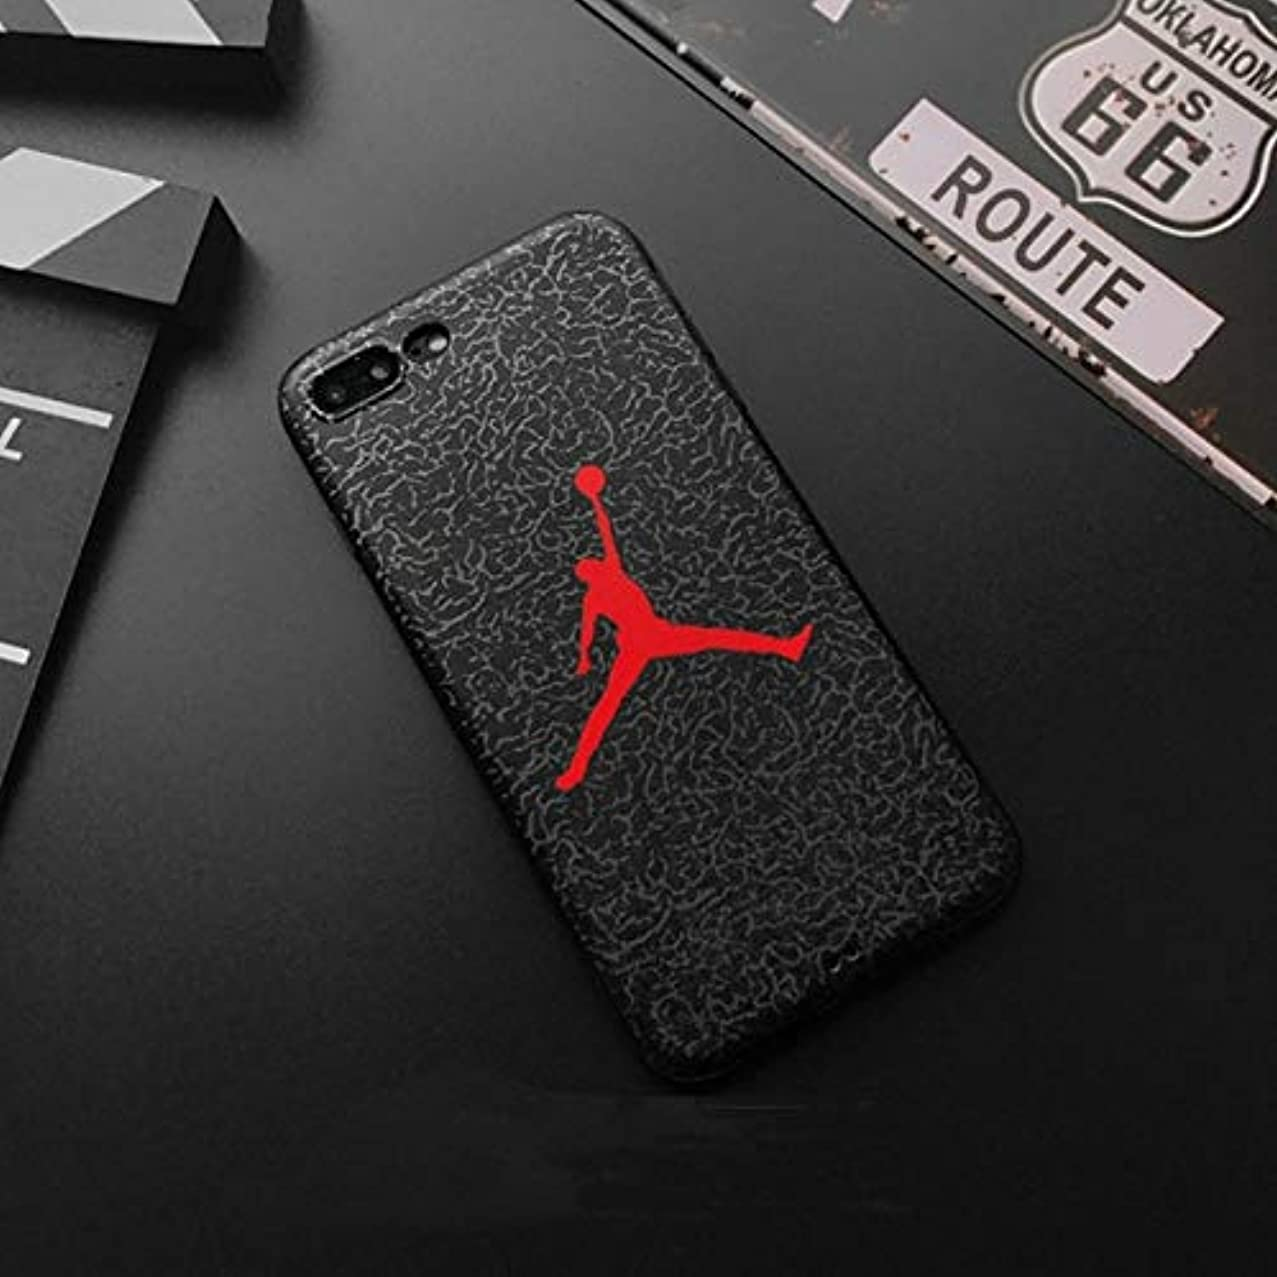 OTADO Hot Jump Jordan 3D Emboss Soft Silicon Cover case for iPhone 5 5S SE 6 6Plus S 7 7 Plus 8 8Plus X XS XR MAX Fly Man Phone Cases